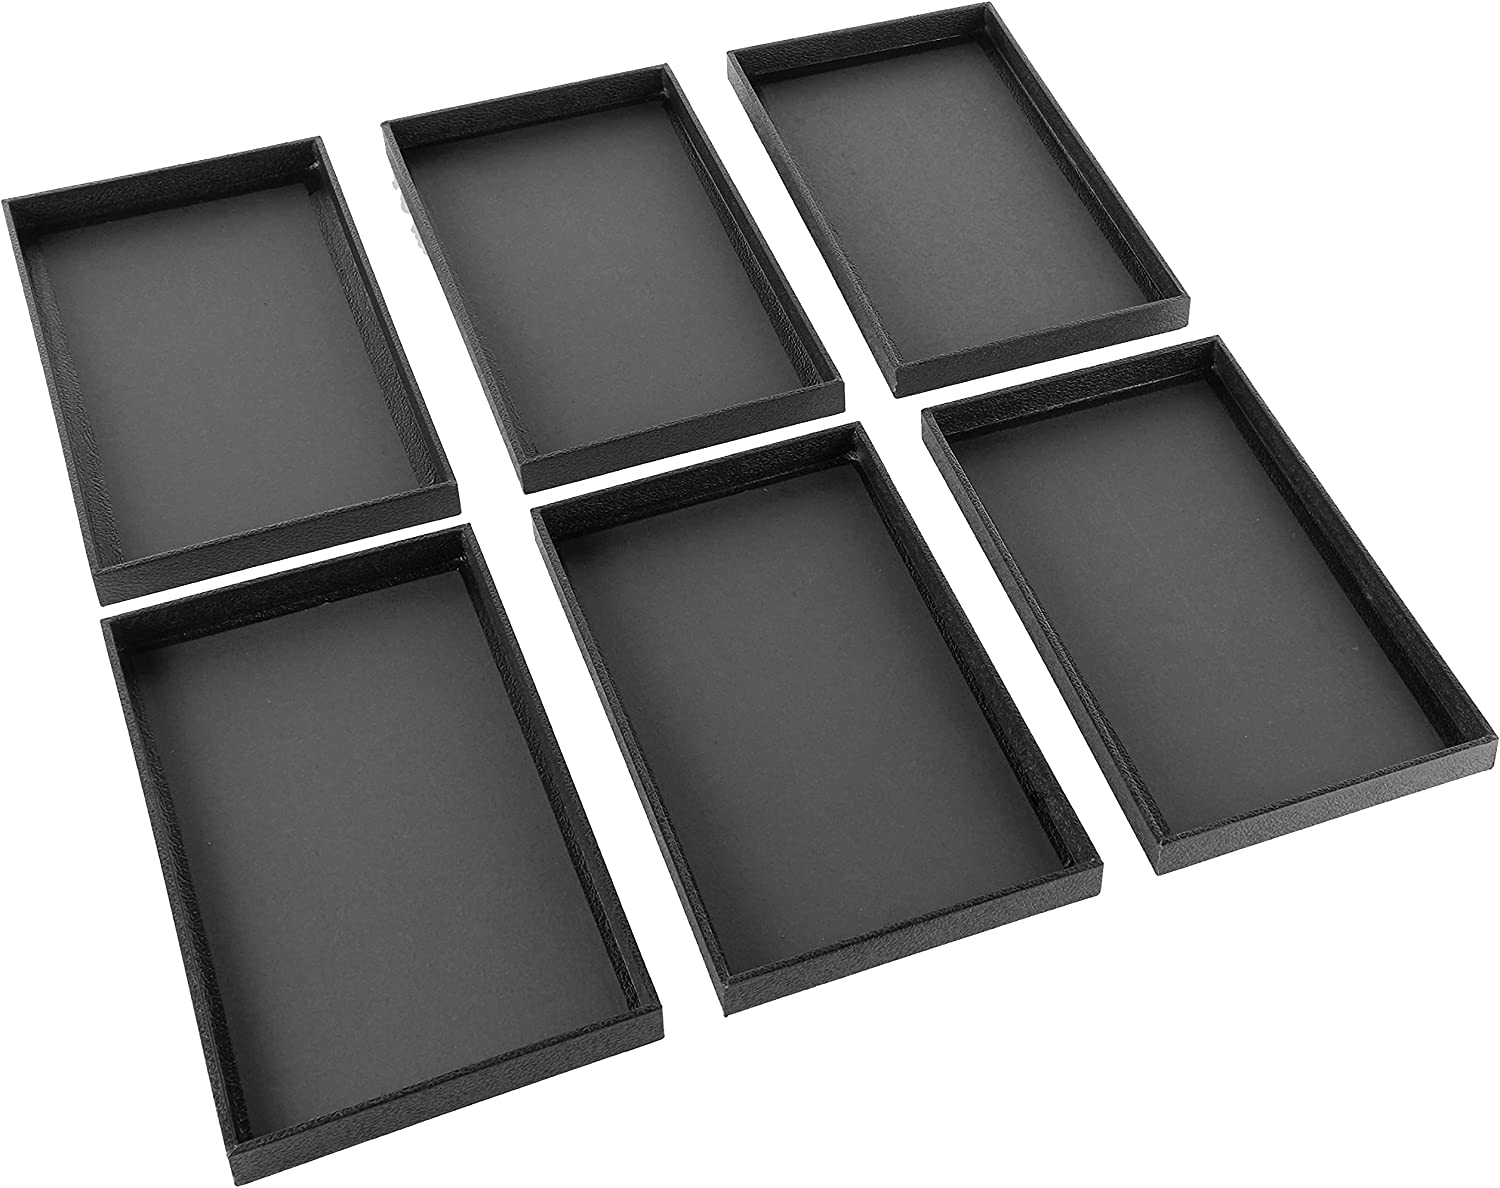 Beadaholique 6-Piece Faux Leather Jewelry Display/Showcase Displays Trays, Black : Clothing, Shoes & Jewelry